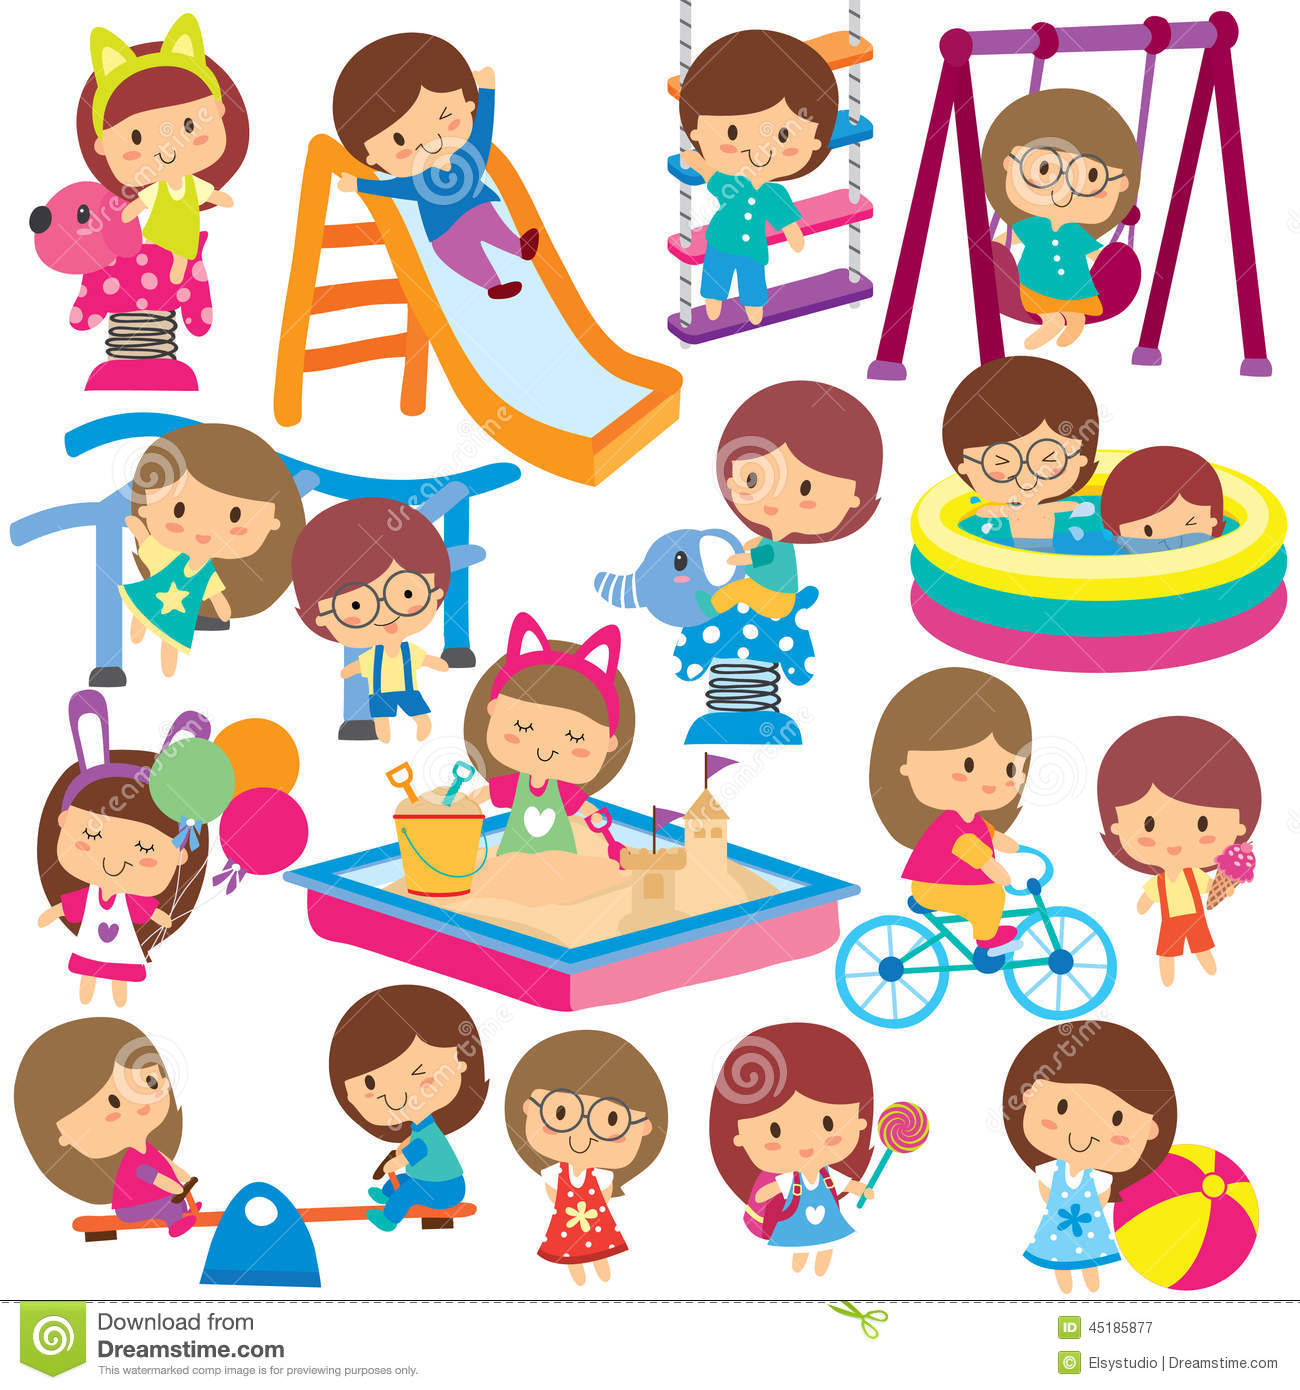 Activities clipart illustration. Collection kids clip art